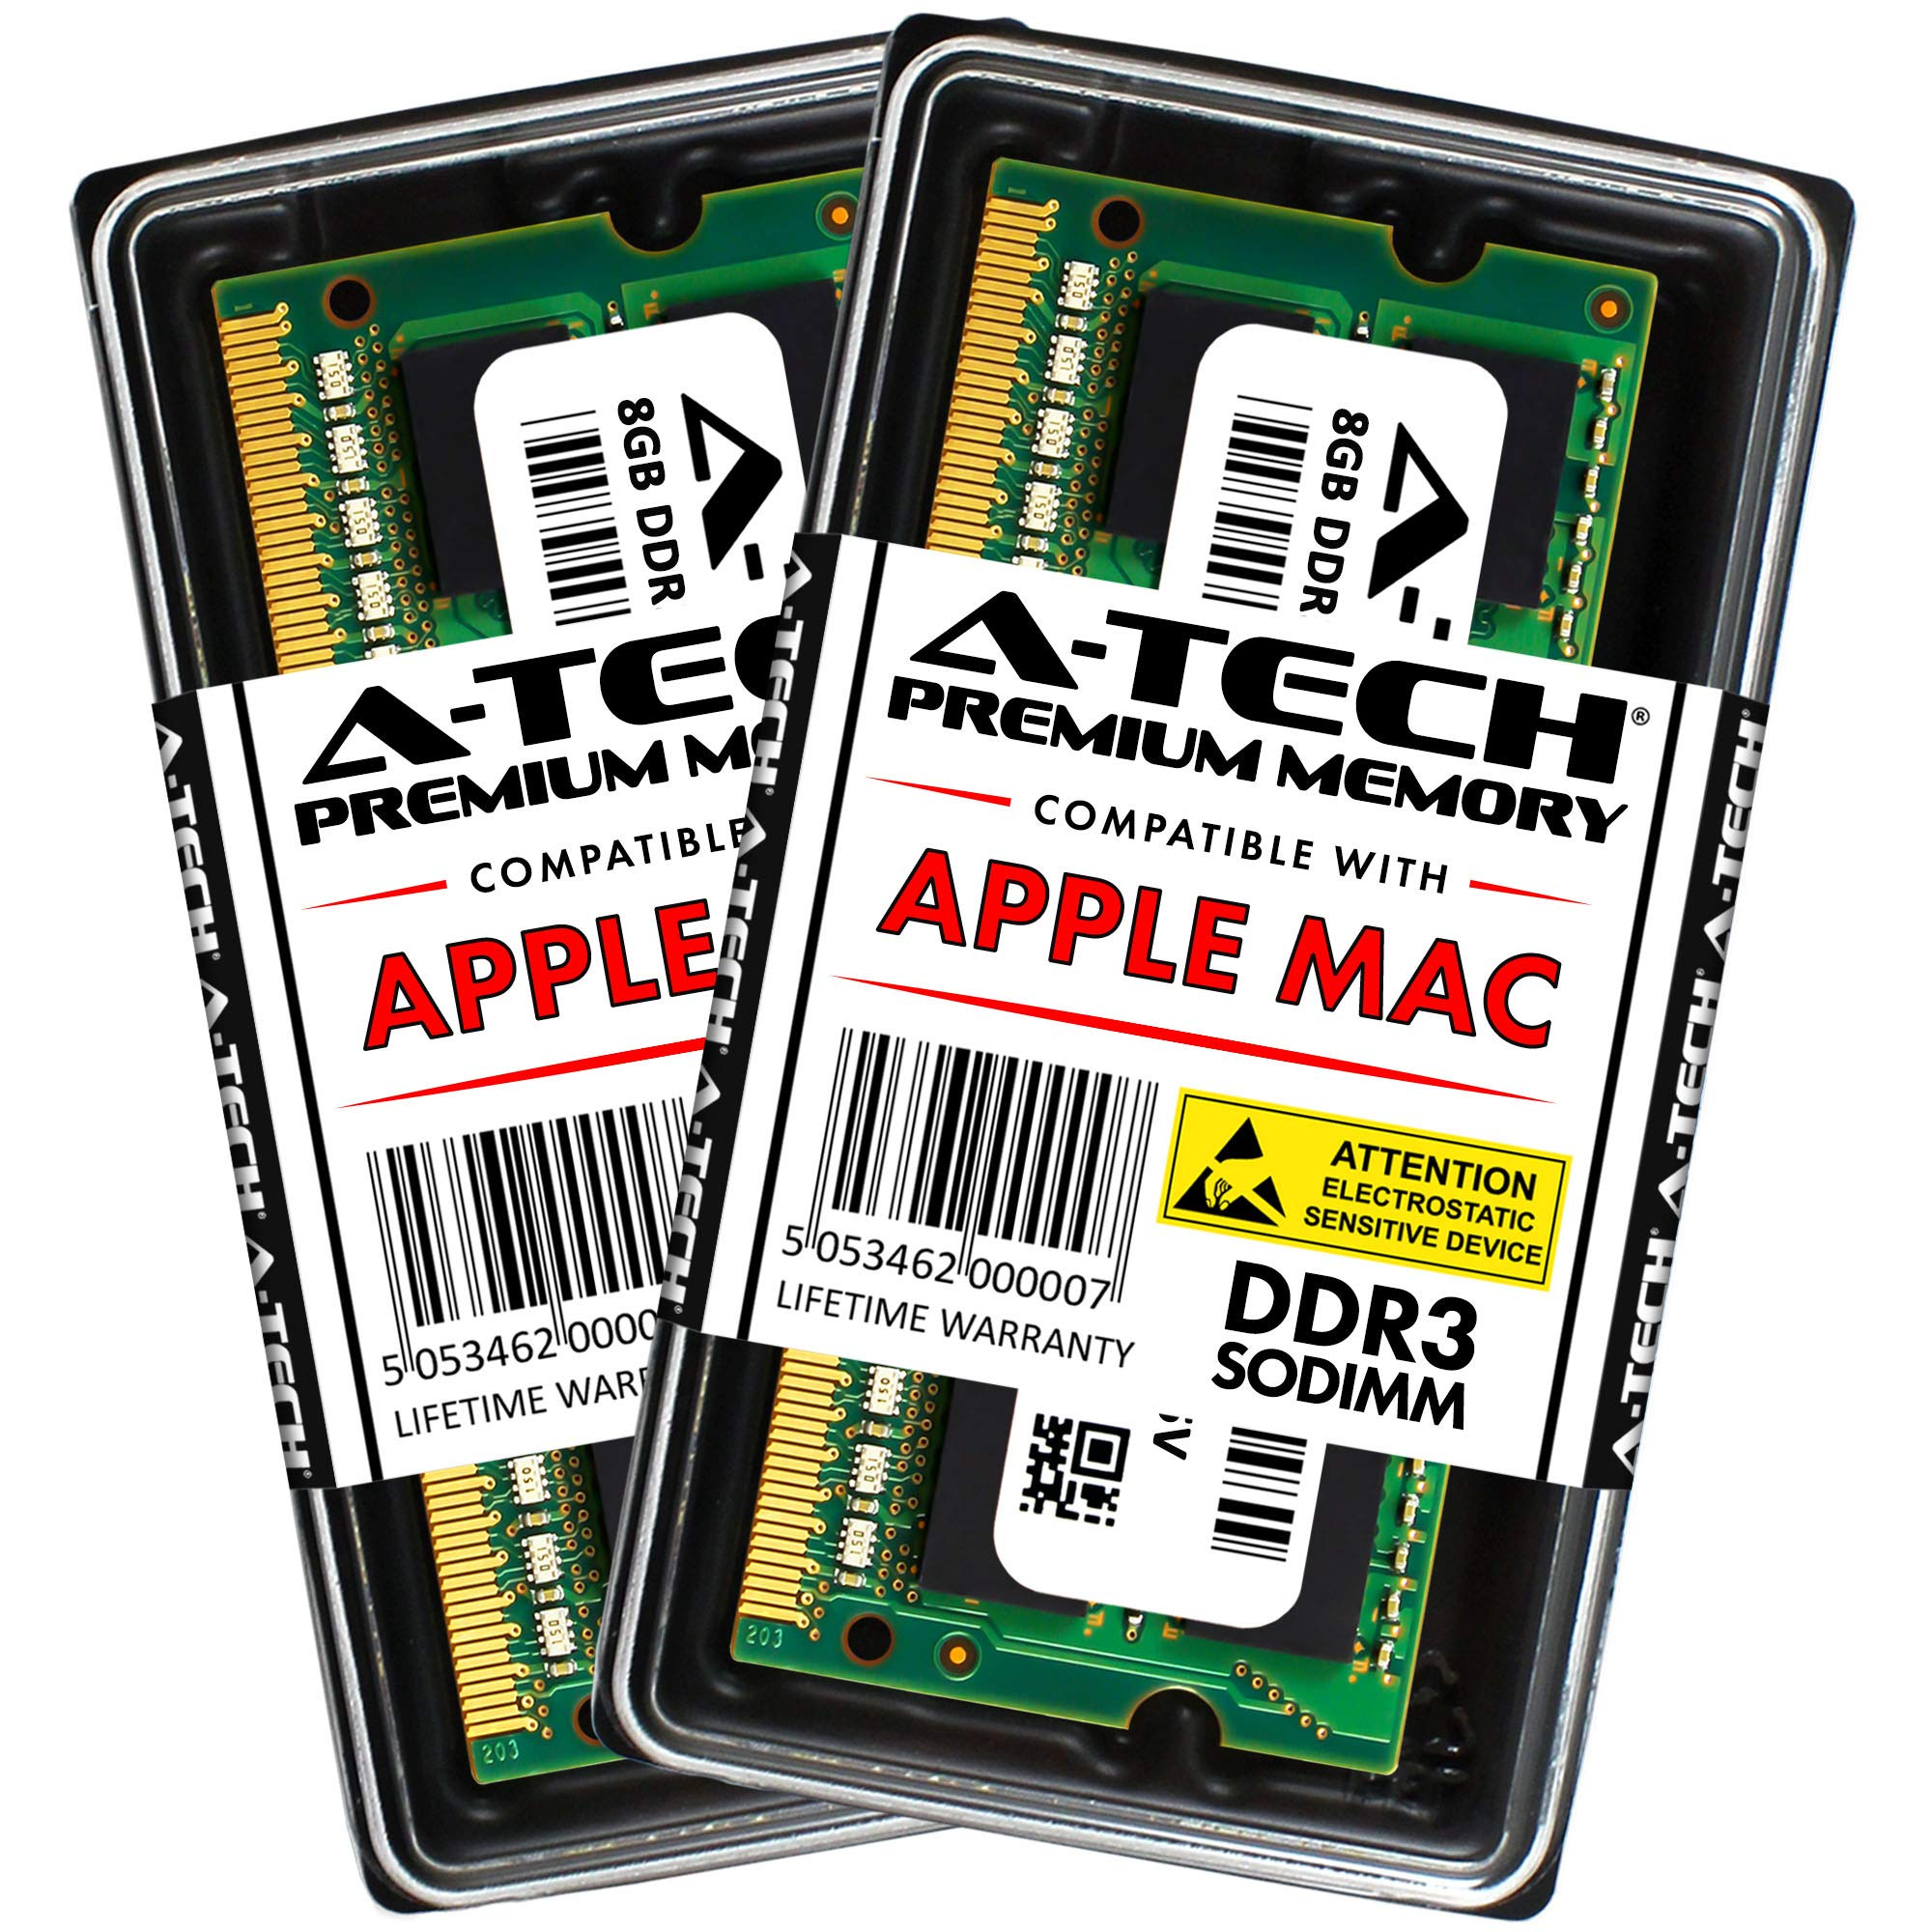 A-Tech 16GB Kit (2x 8GB) DDR3 1600MHz PC3-12800 204-pin SODIMM for Apple MacBook Pro (Mid 2012), iMac (Late 2012, Early/Late 2013, Late 2014 5K, Mid 2015 5K), Mac mini (Late 2012) - Memory RAM Upgrade by A-Tech